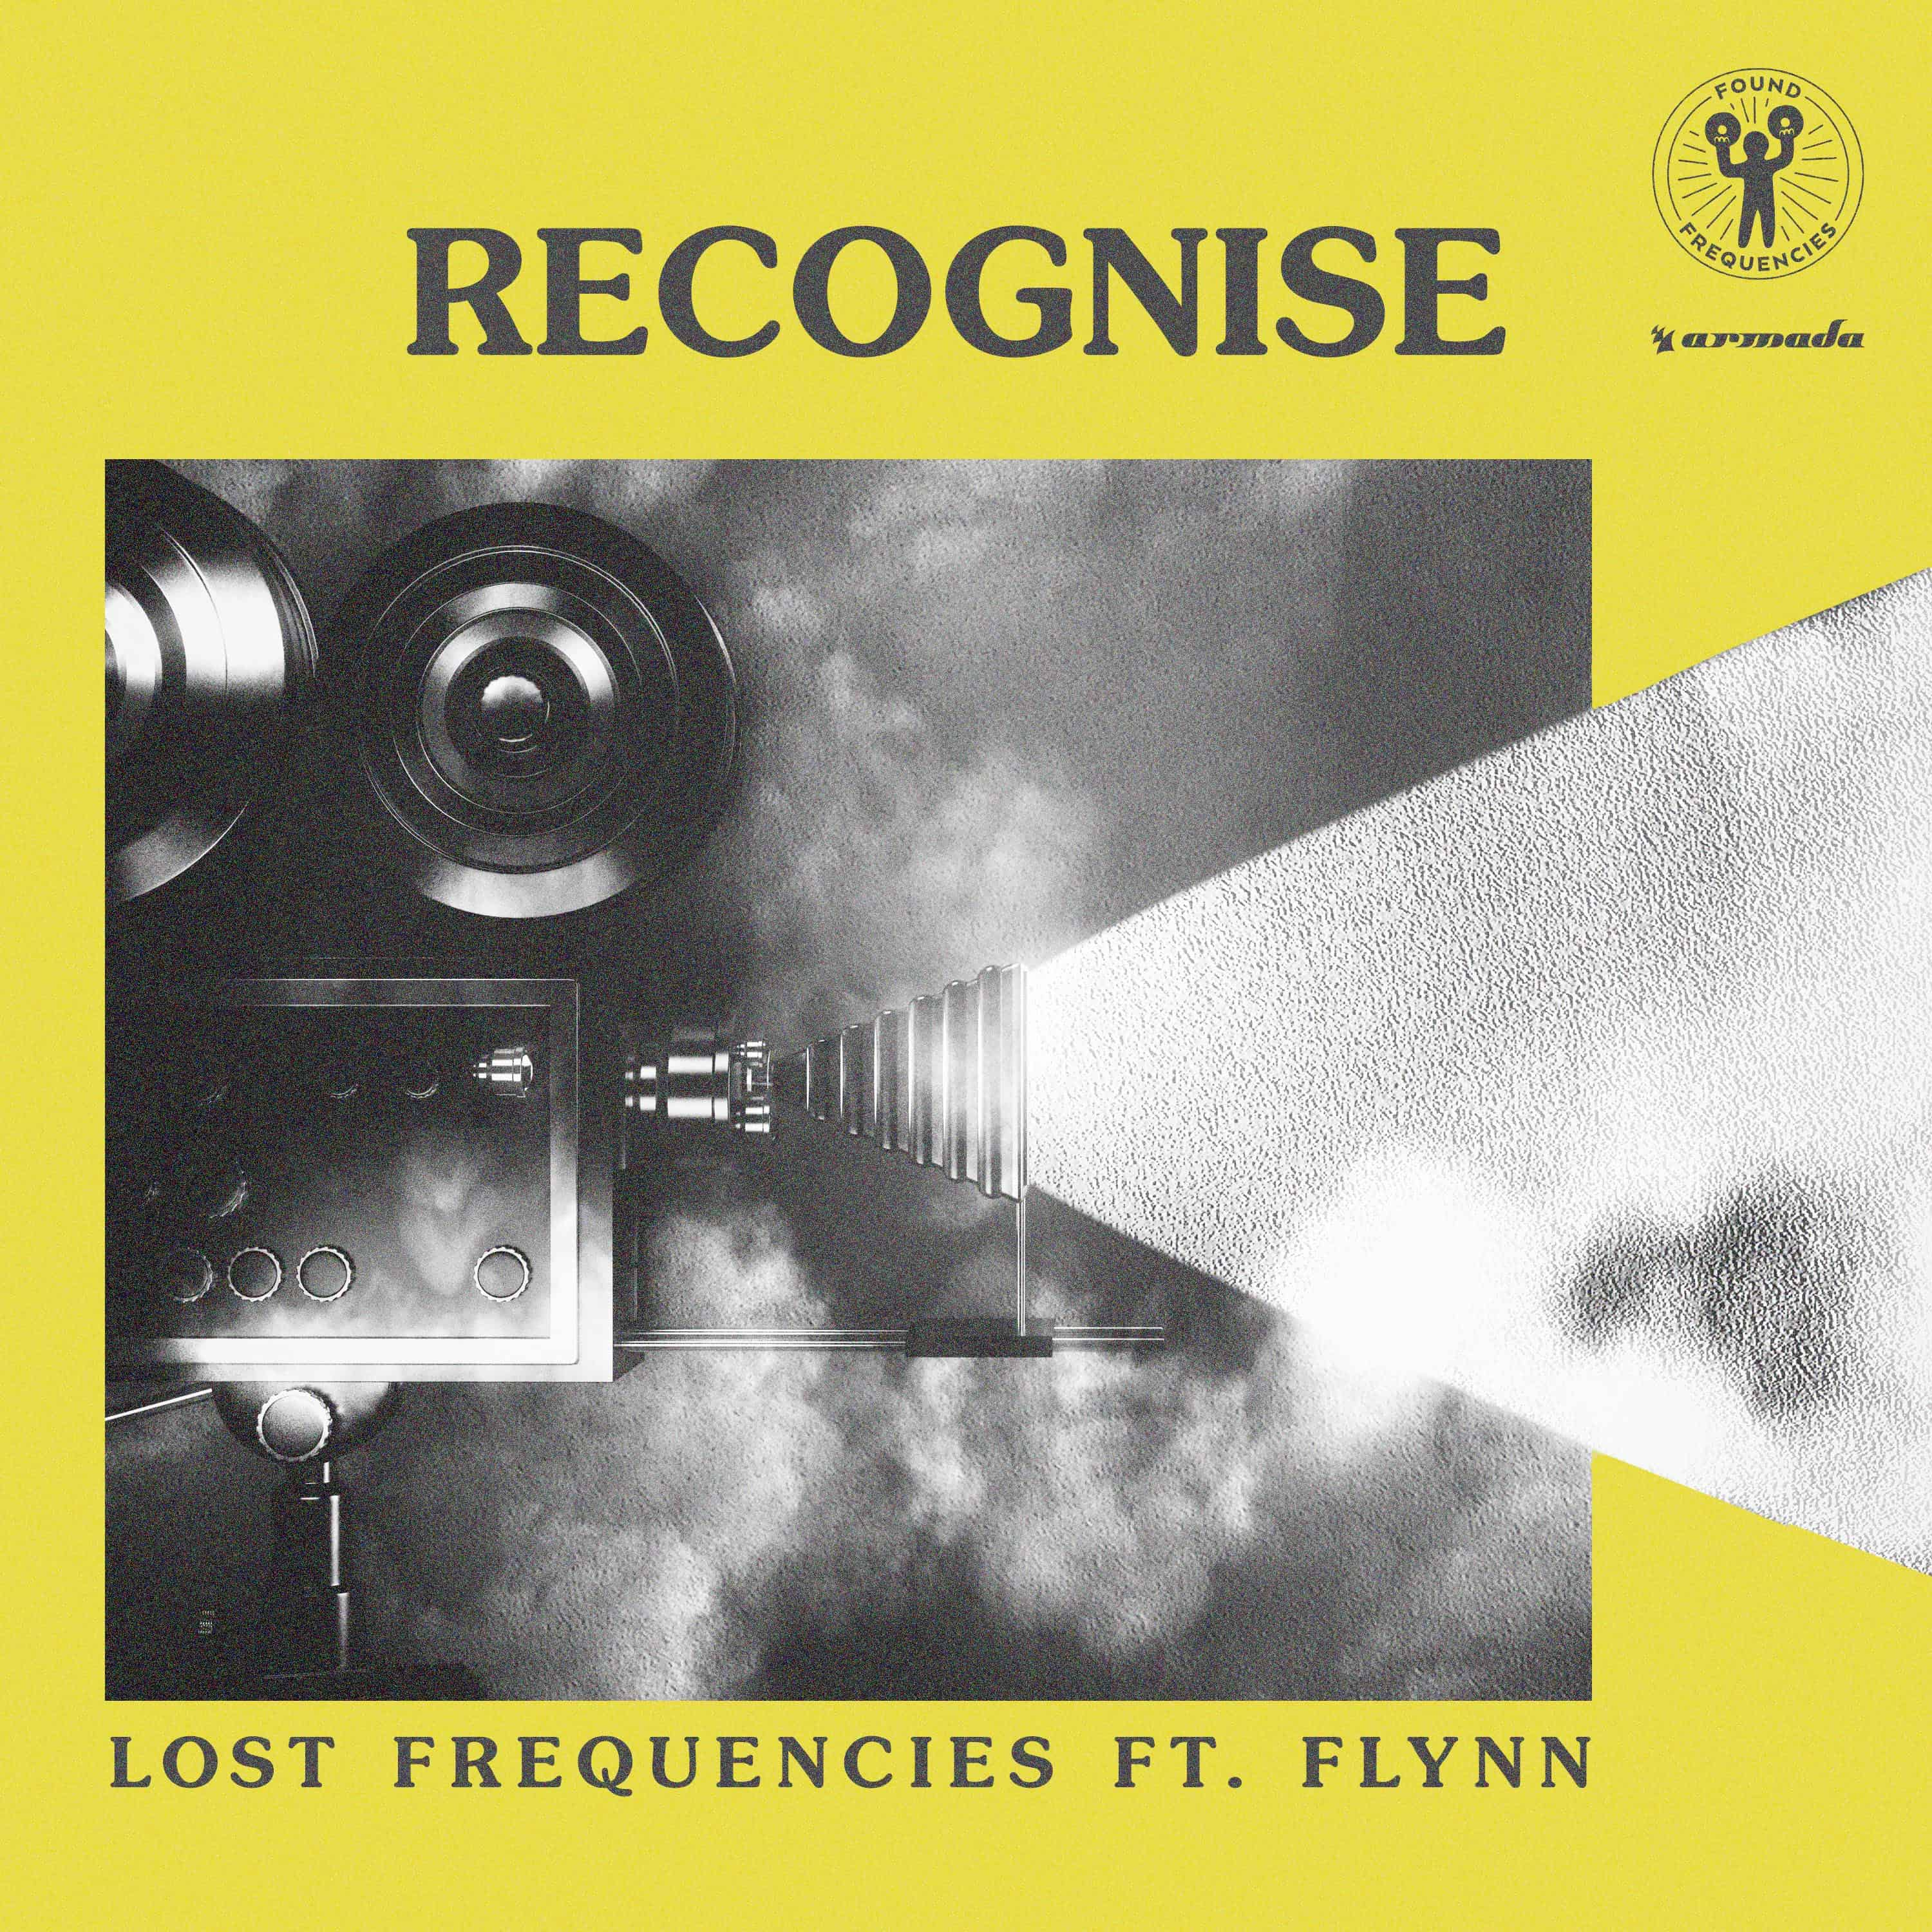 Lost Frequencies releases new collaboration with up-and-coming talent Flynn: 'Recognise'